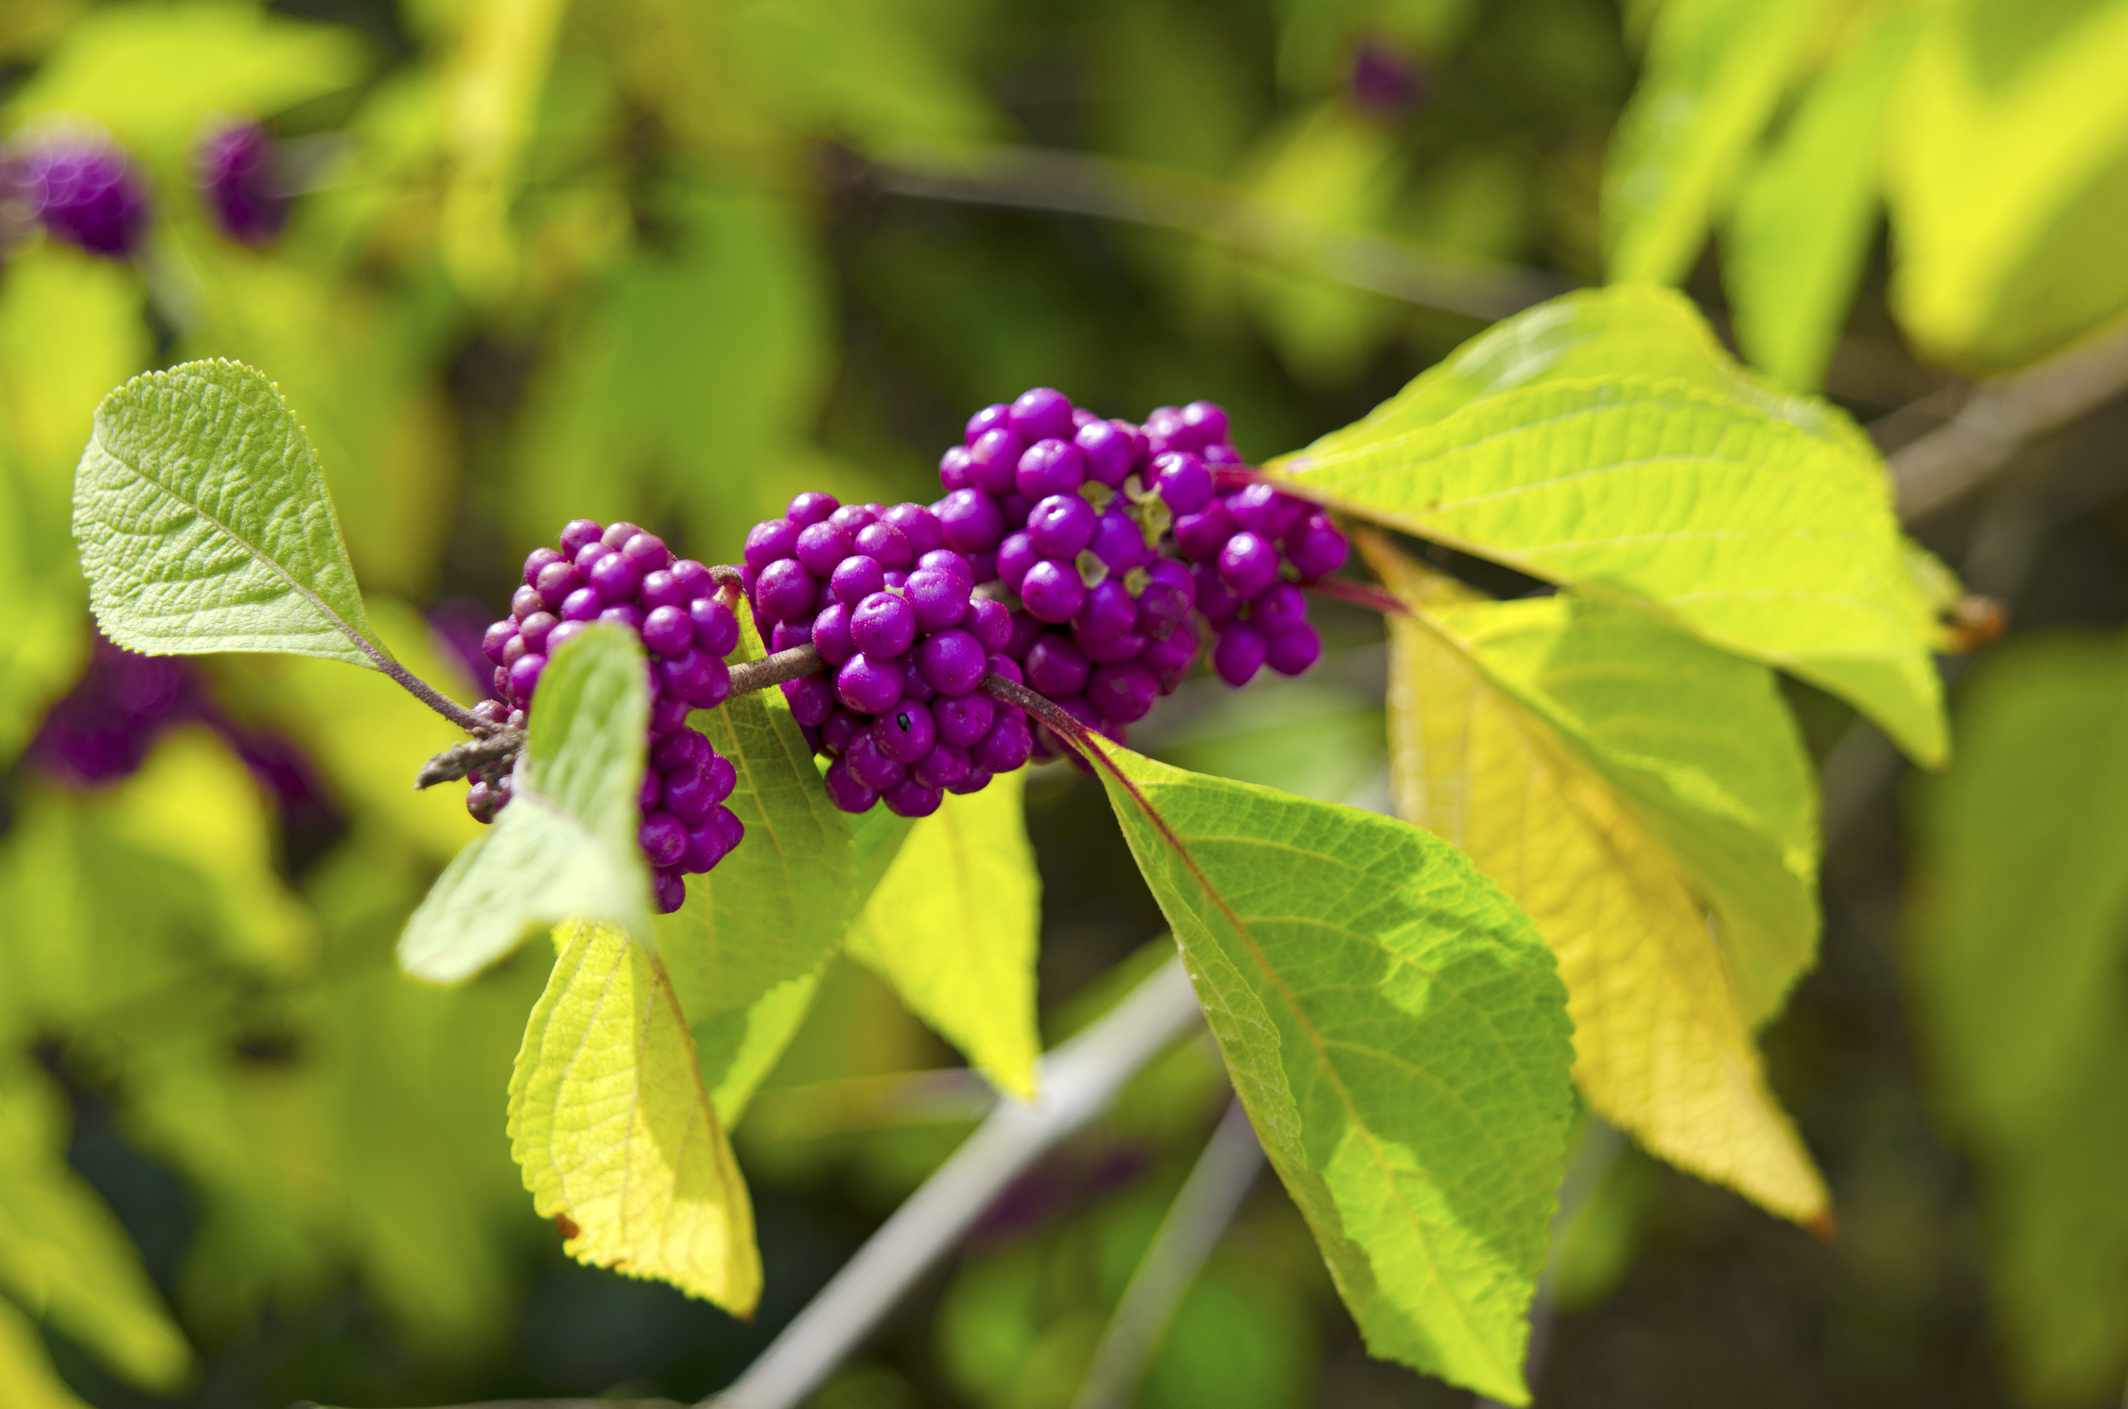 A close up of leaves and berries of an American Beautyberry.